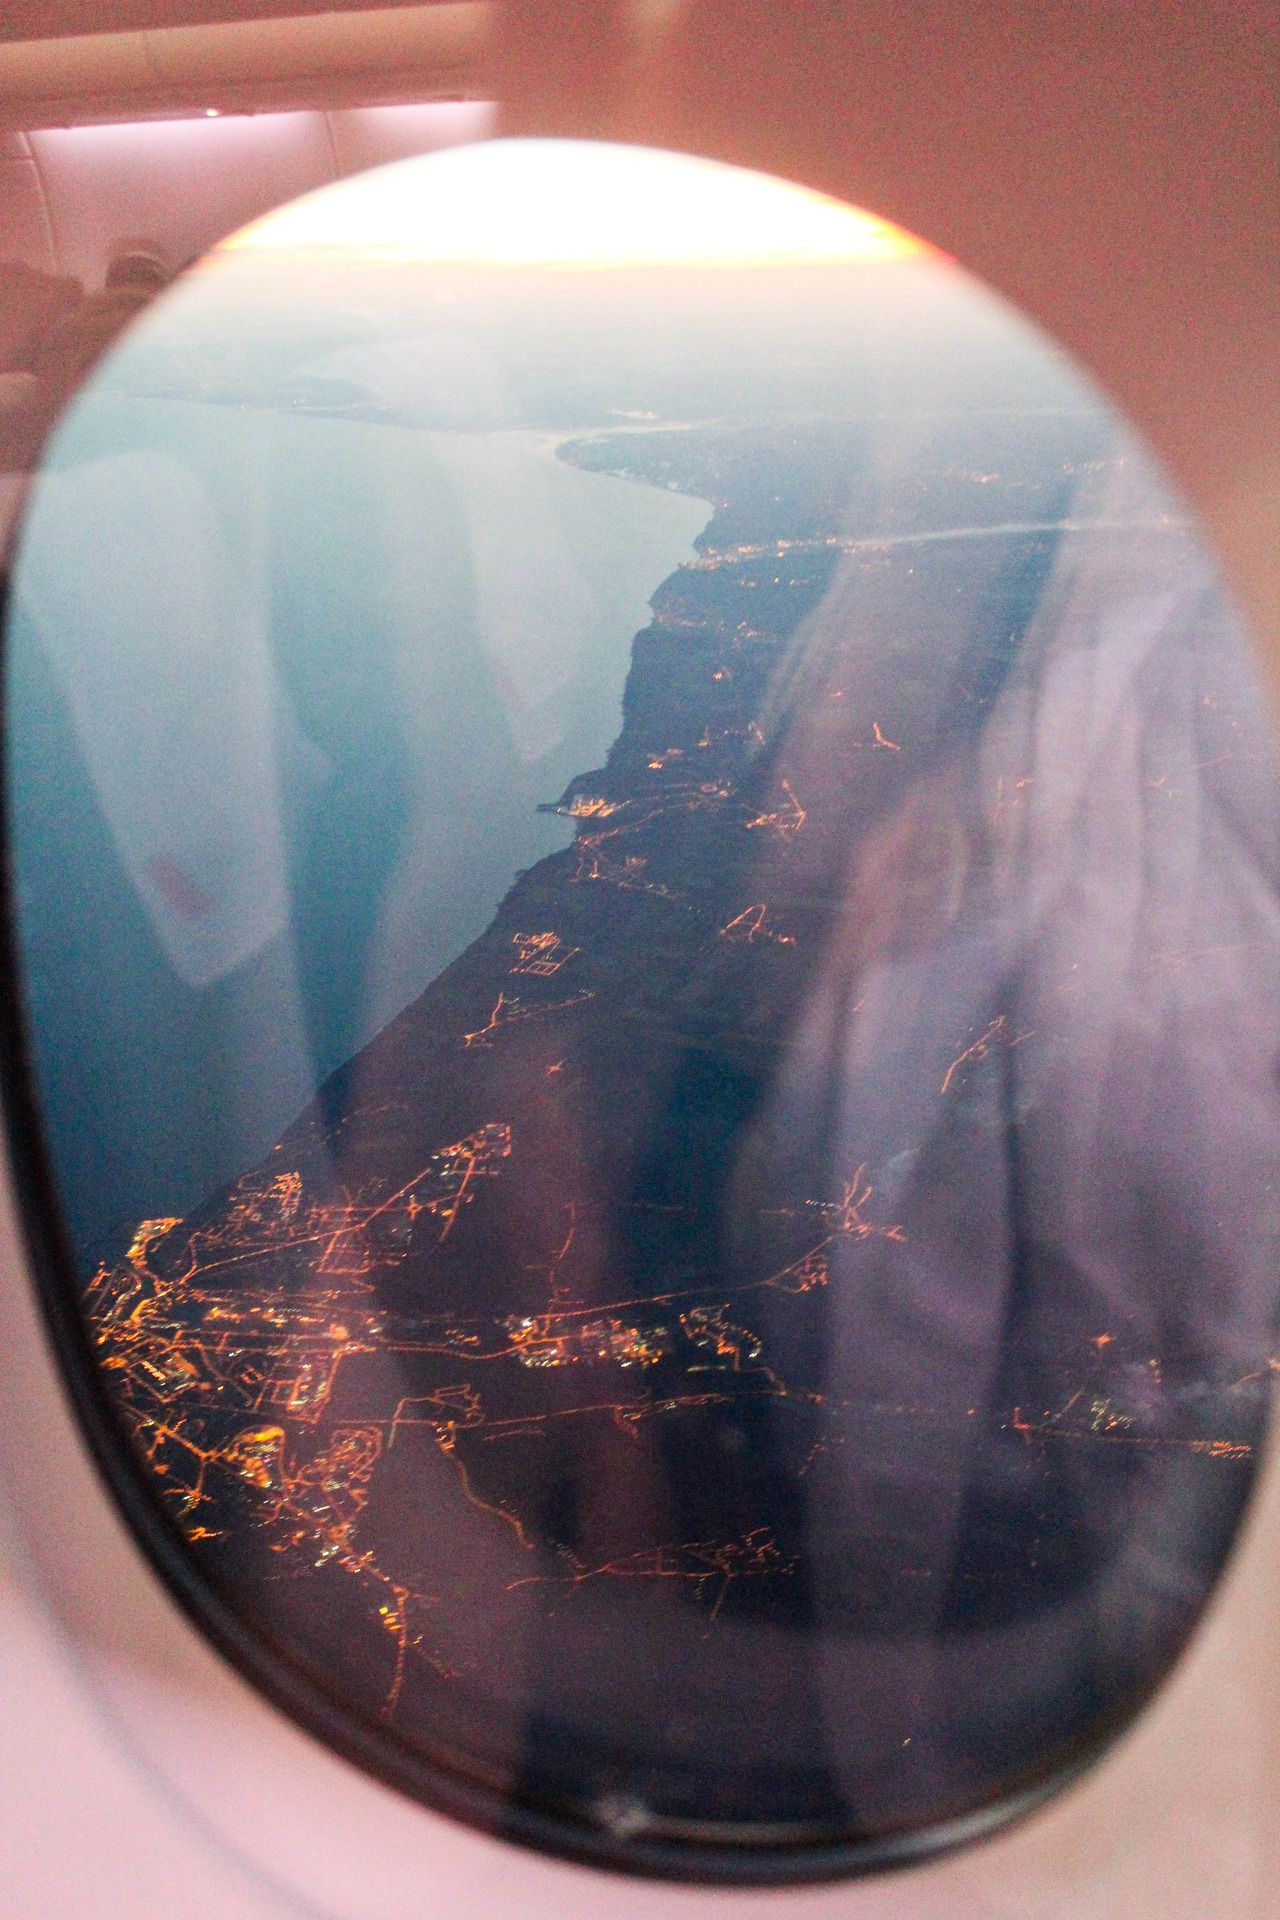 nothing is better than looking out of airplane windows